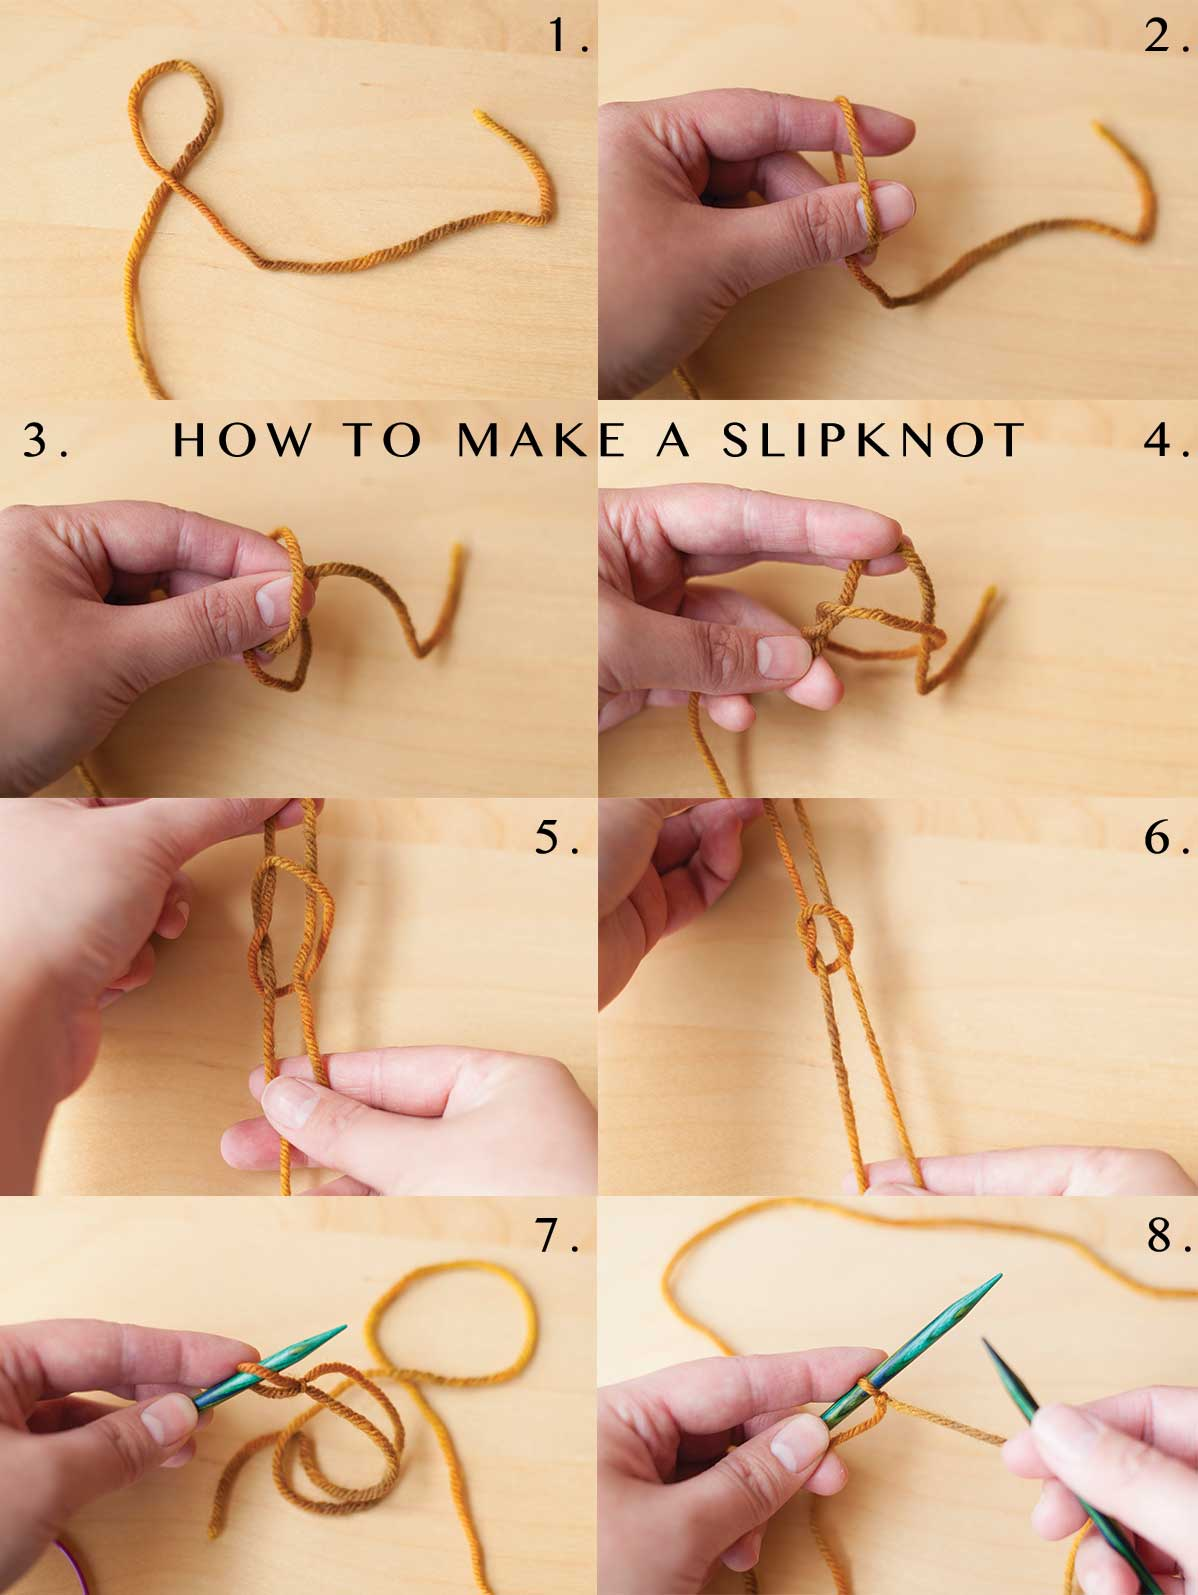 How to make a slipknot